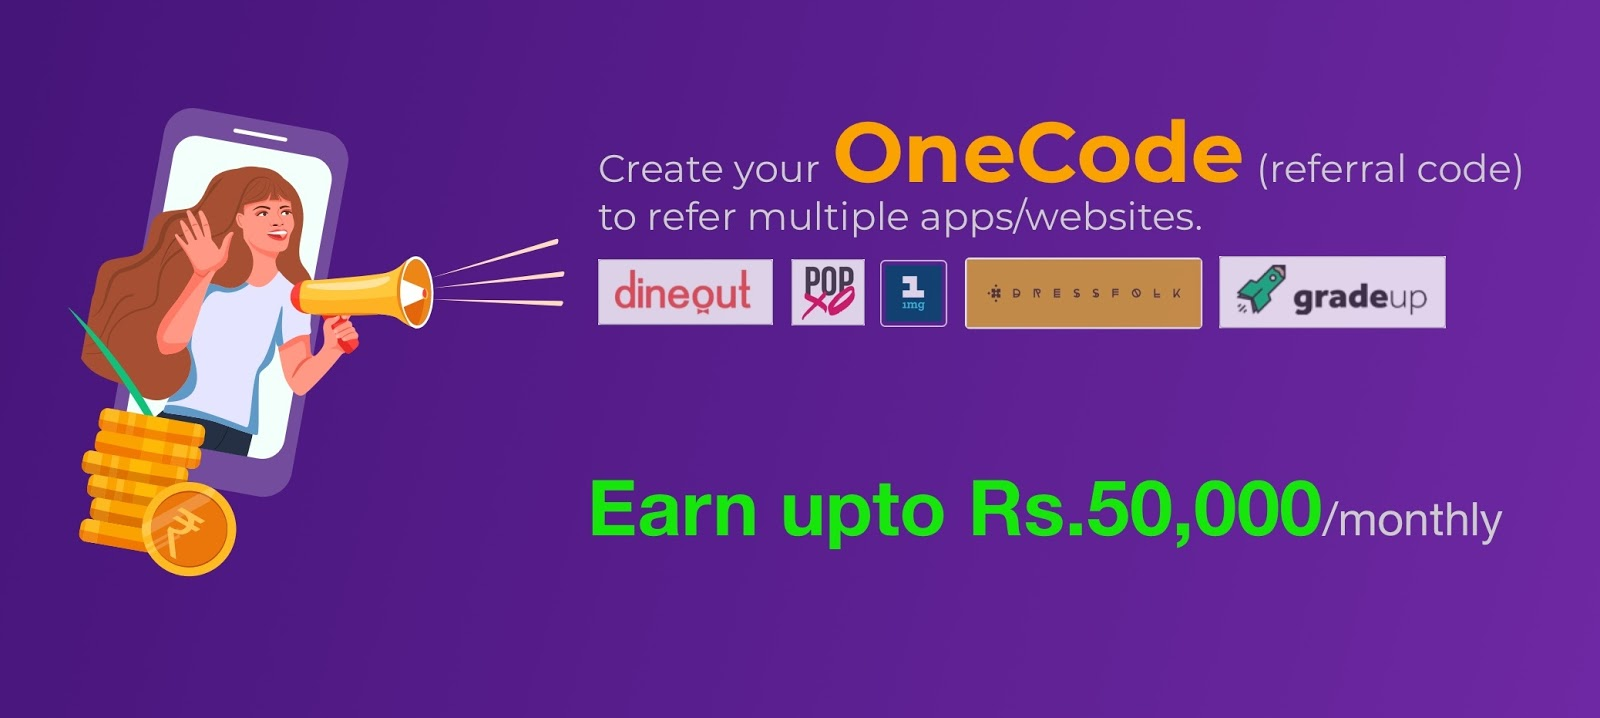 OneCode Referral Code: Save Up to Rs. 50,000 Monthly While Shopping Online Using Your OneCode - Freebies Loot